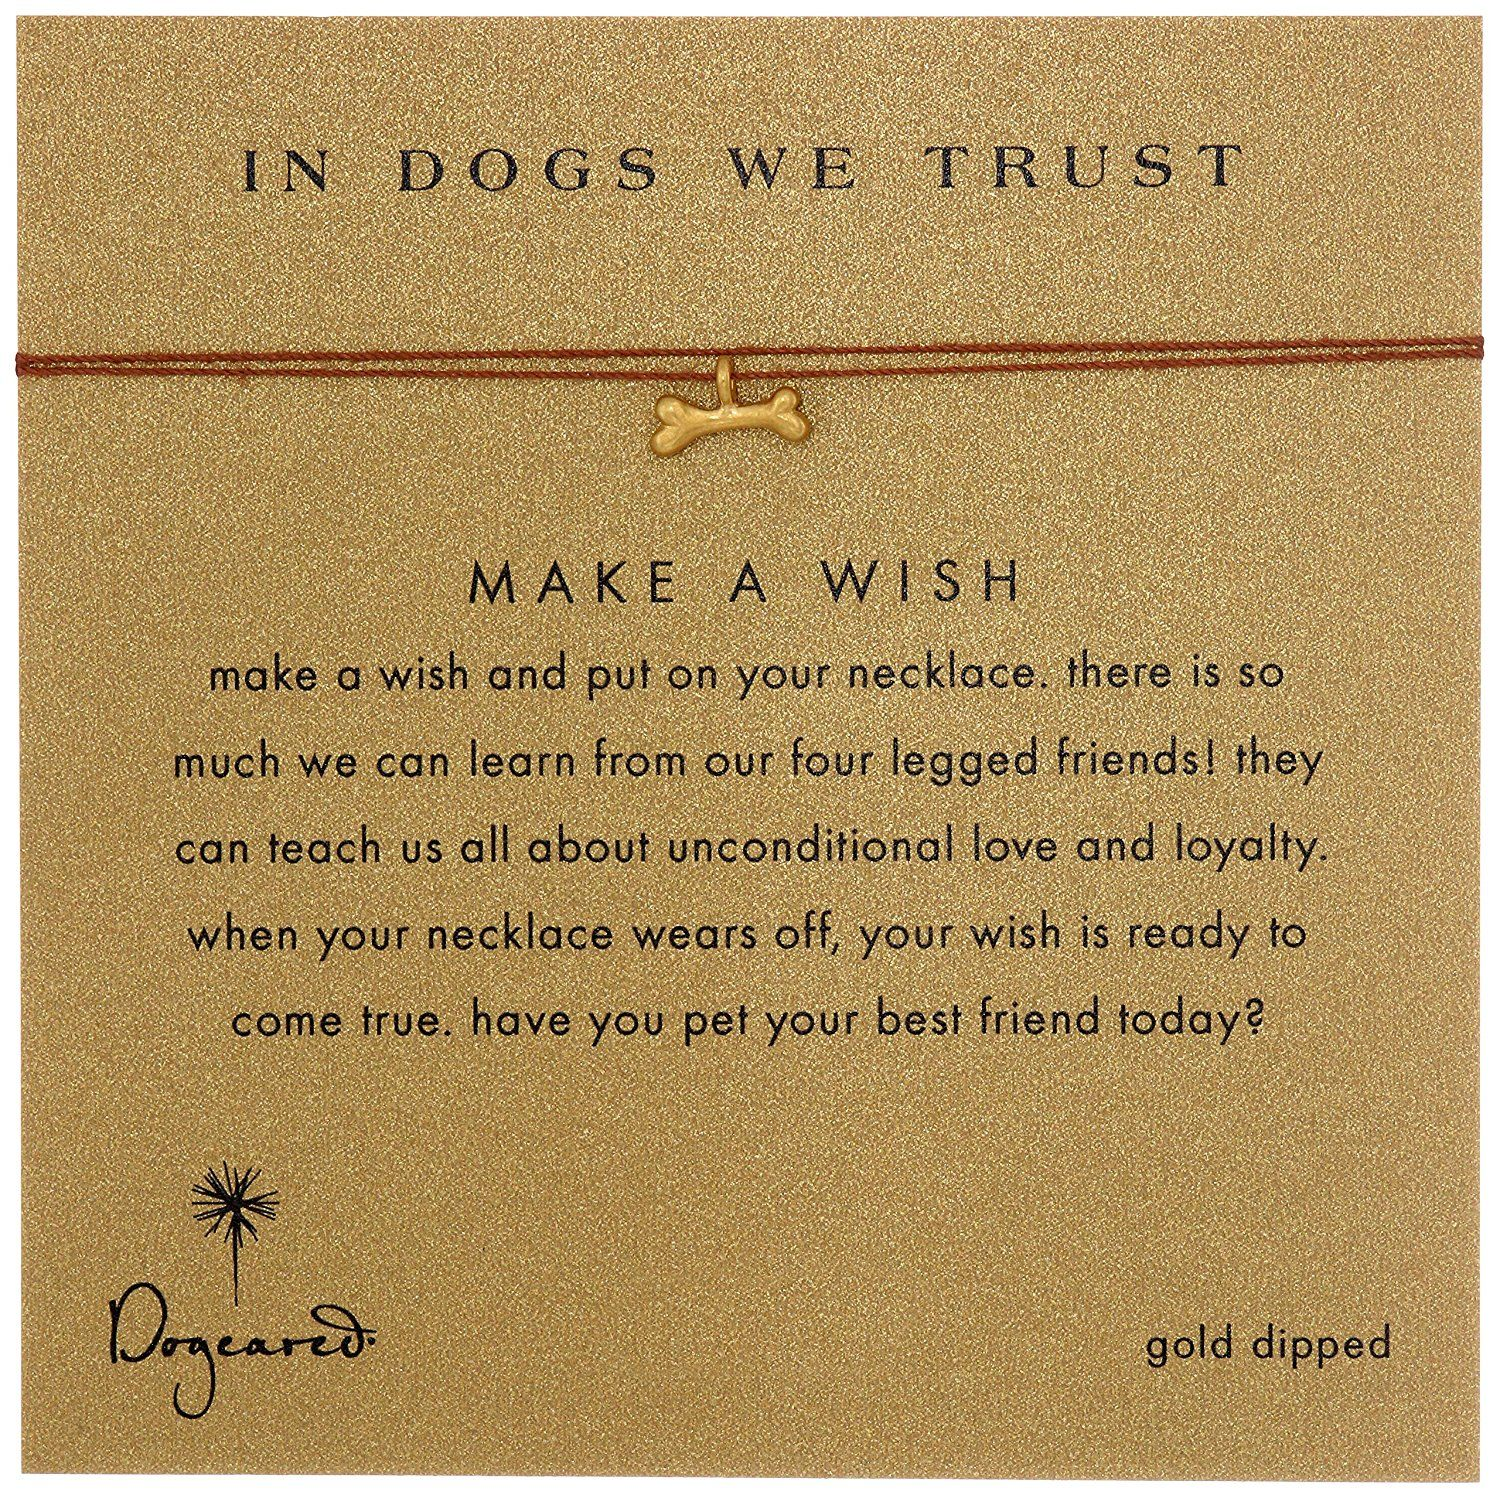 Dogeared Make A Wish In Dogs We Trust Dog Bone Tobacco Necklace